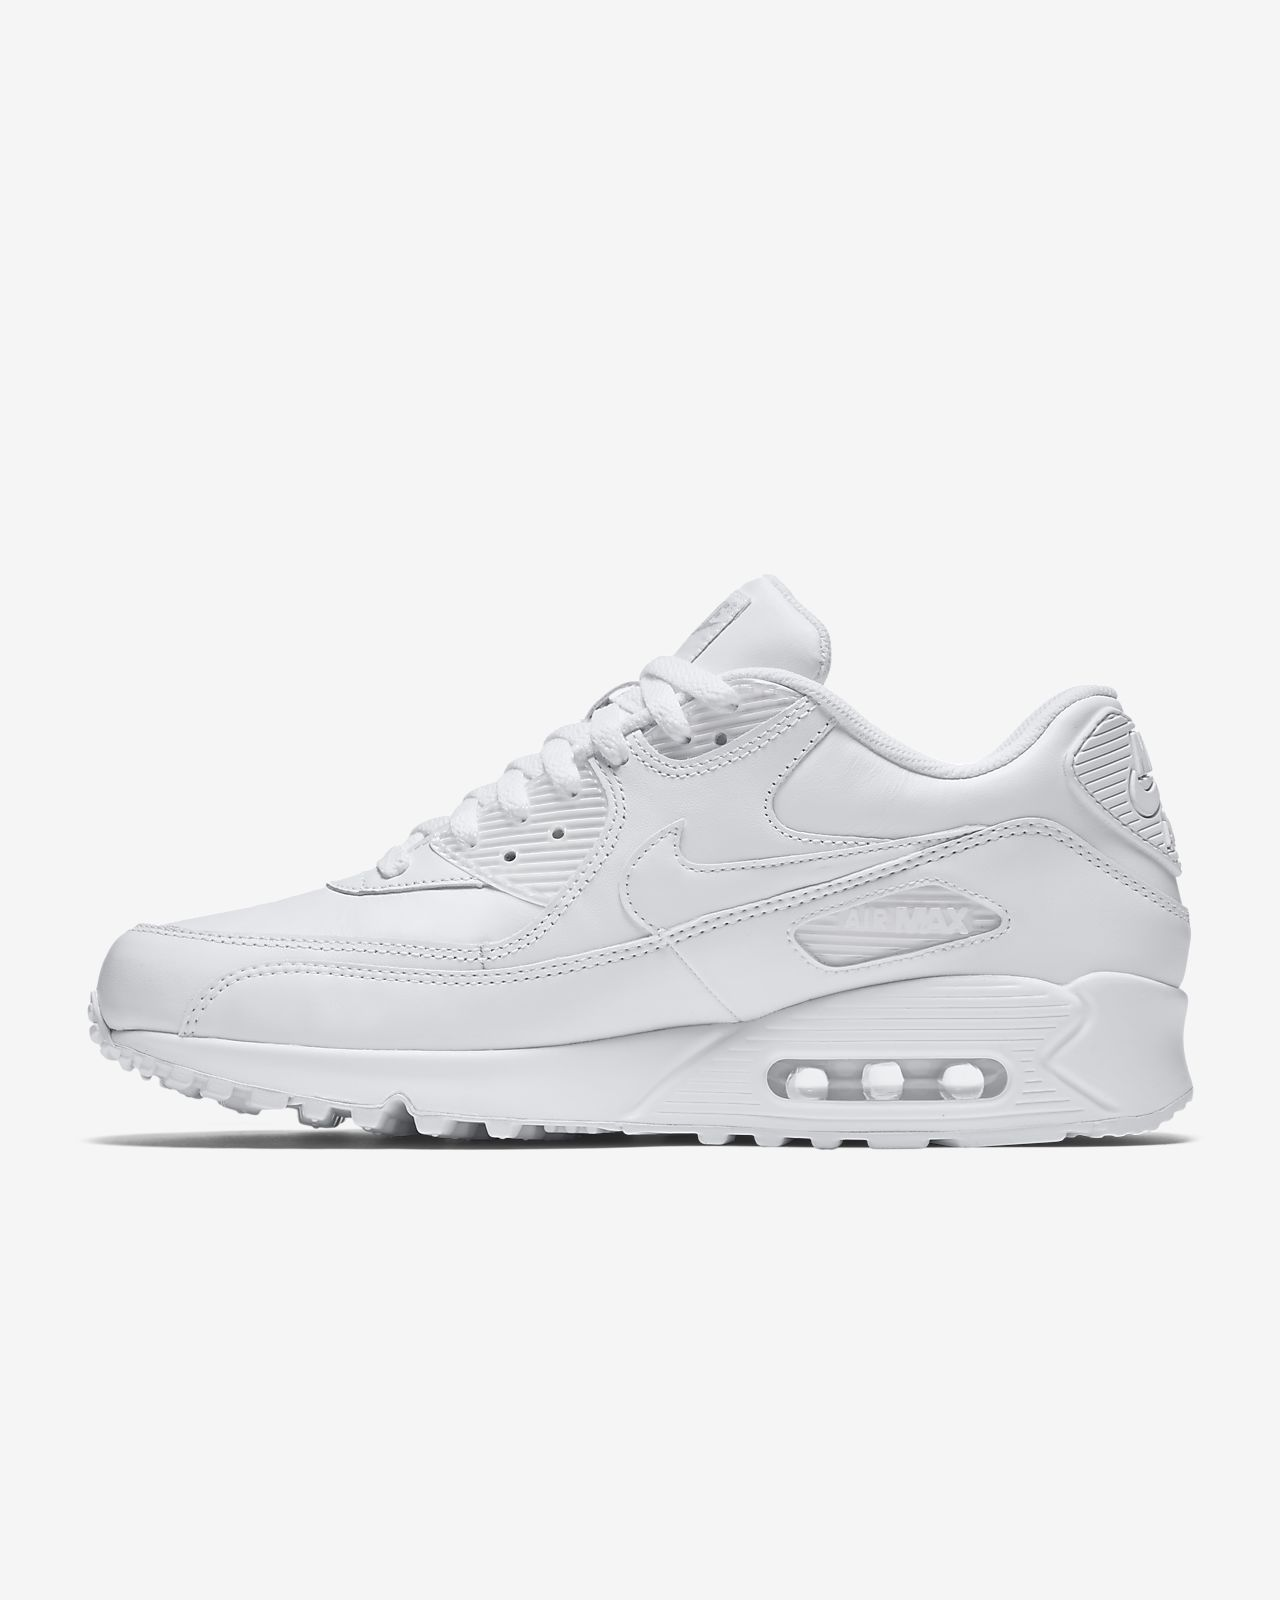 detailed look c2f3f 93778 Low Resolution Nike Air Max 90 Leather Men s Shoe Nike Air Max 90 Leather  Men s Shoe